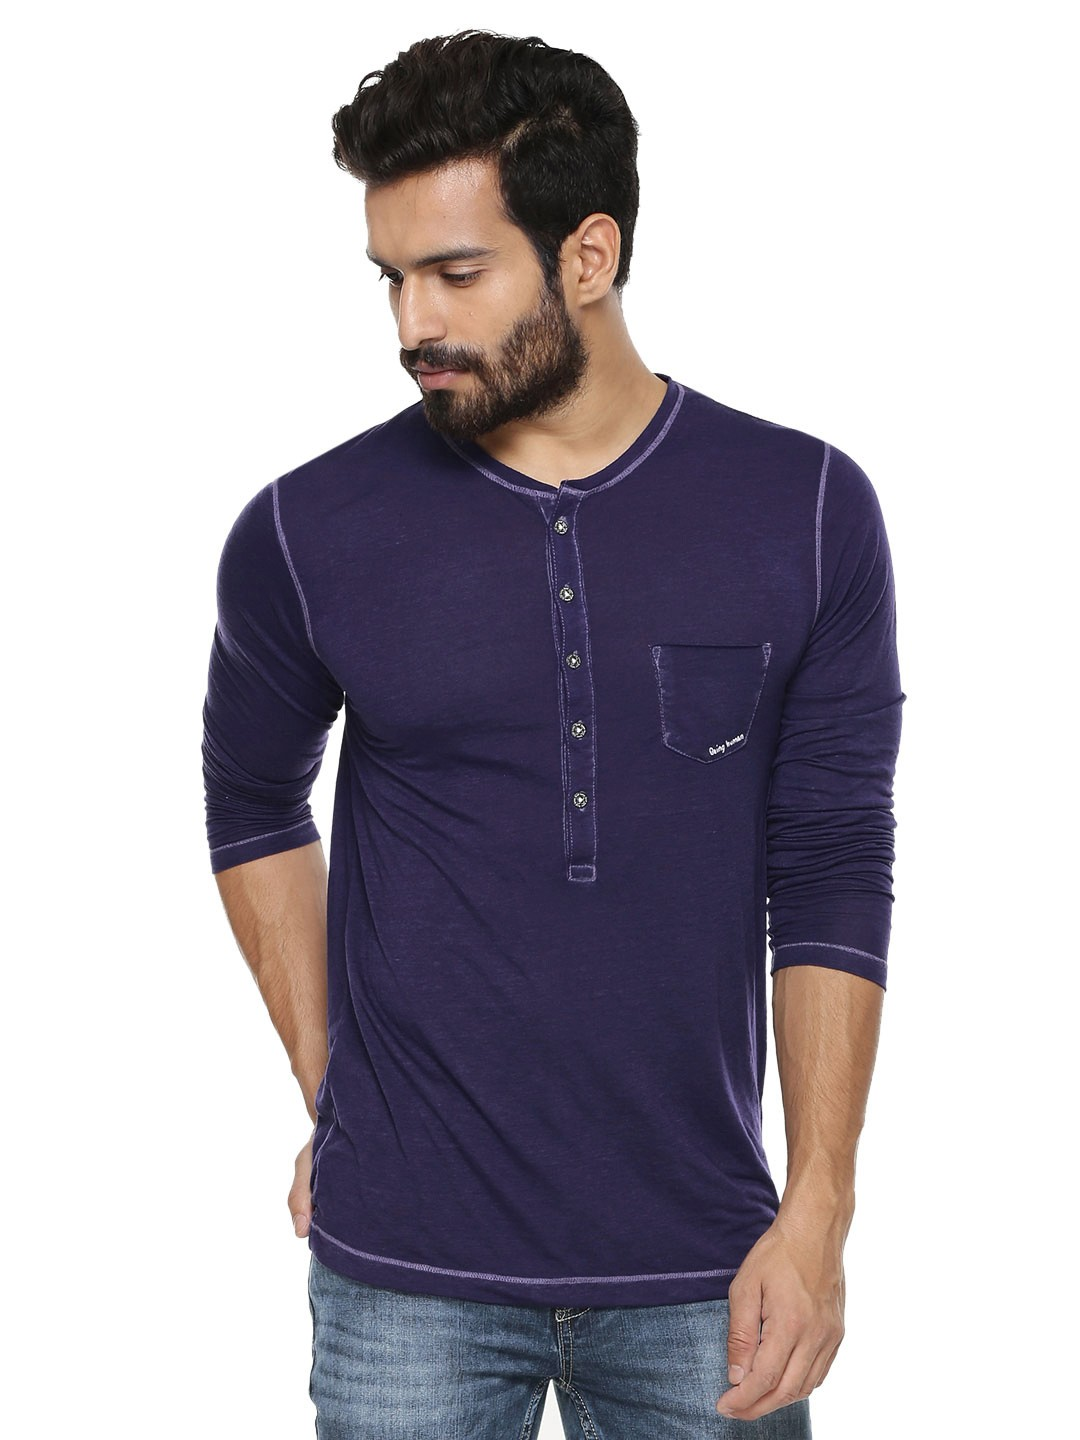 Buy being human henley with patch pocket for men men 39 s for Being human t shirts buy online india